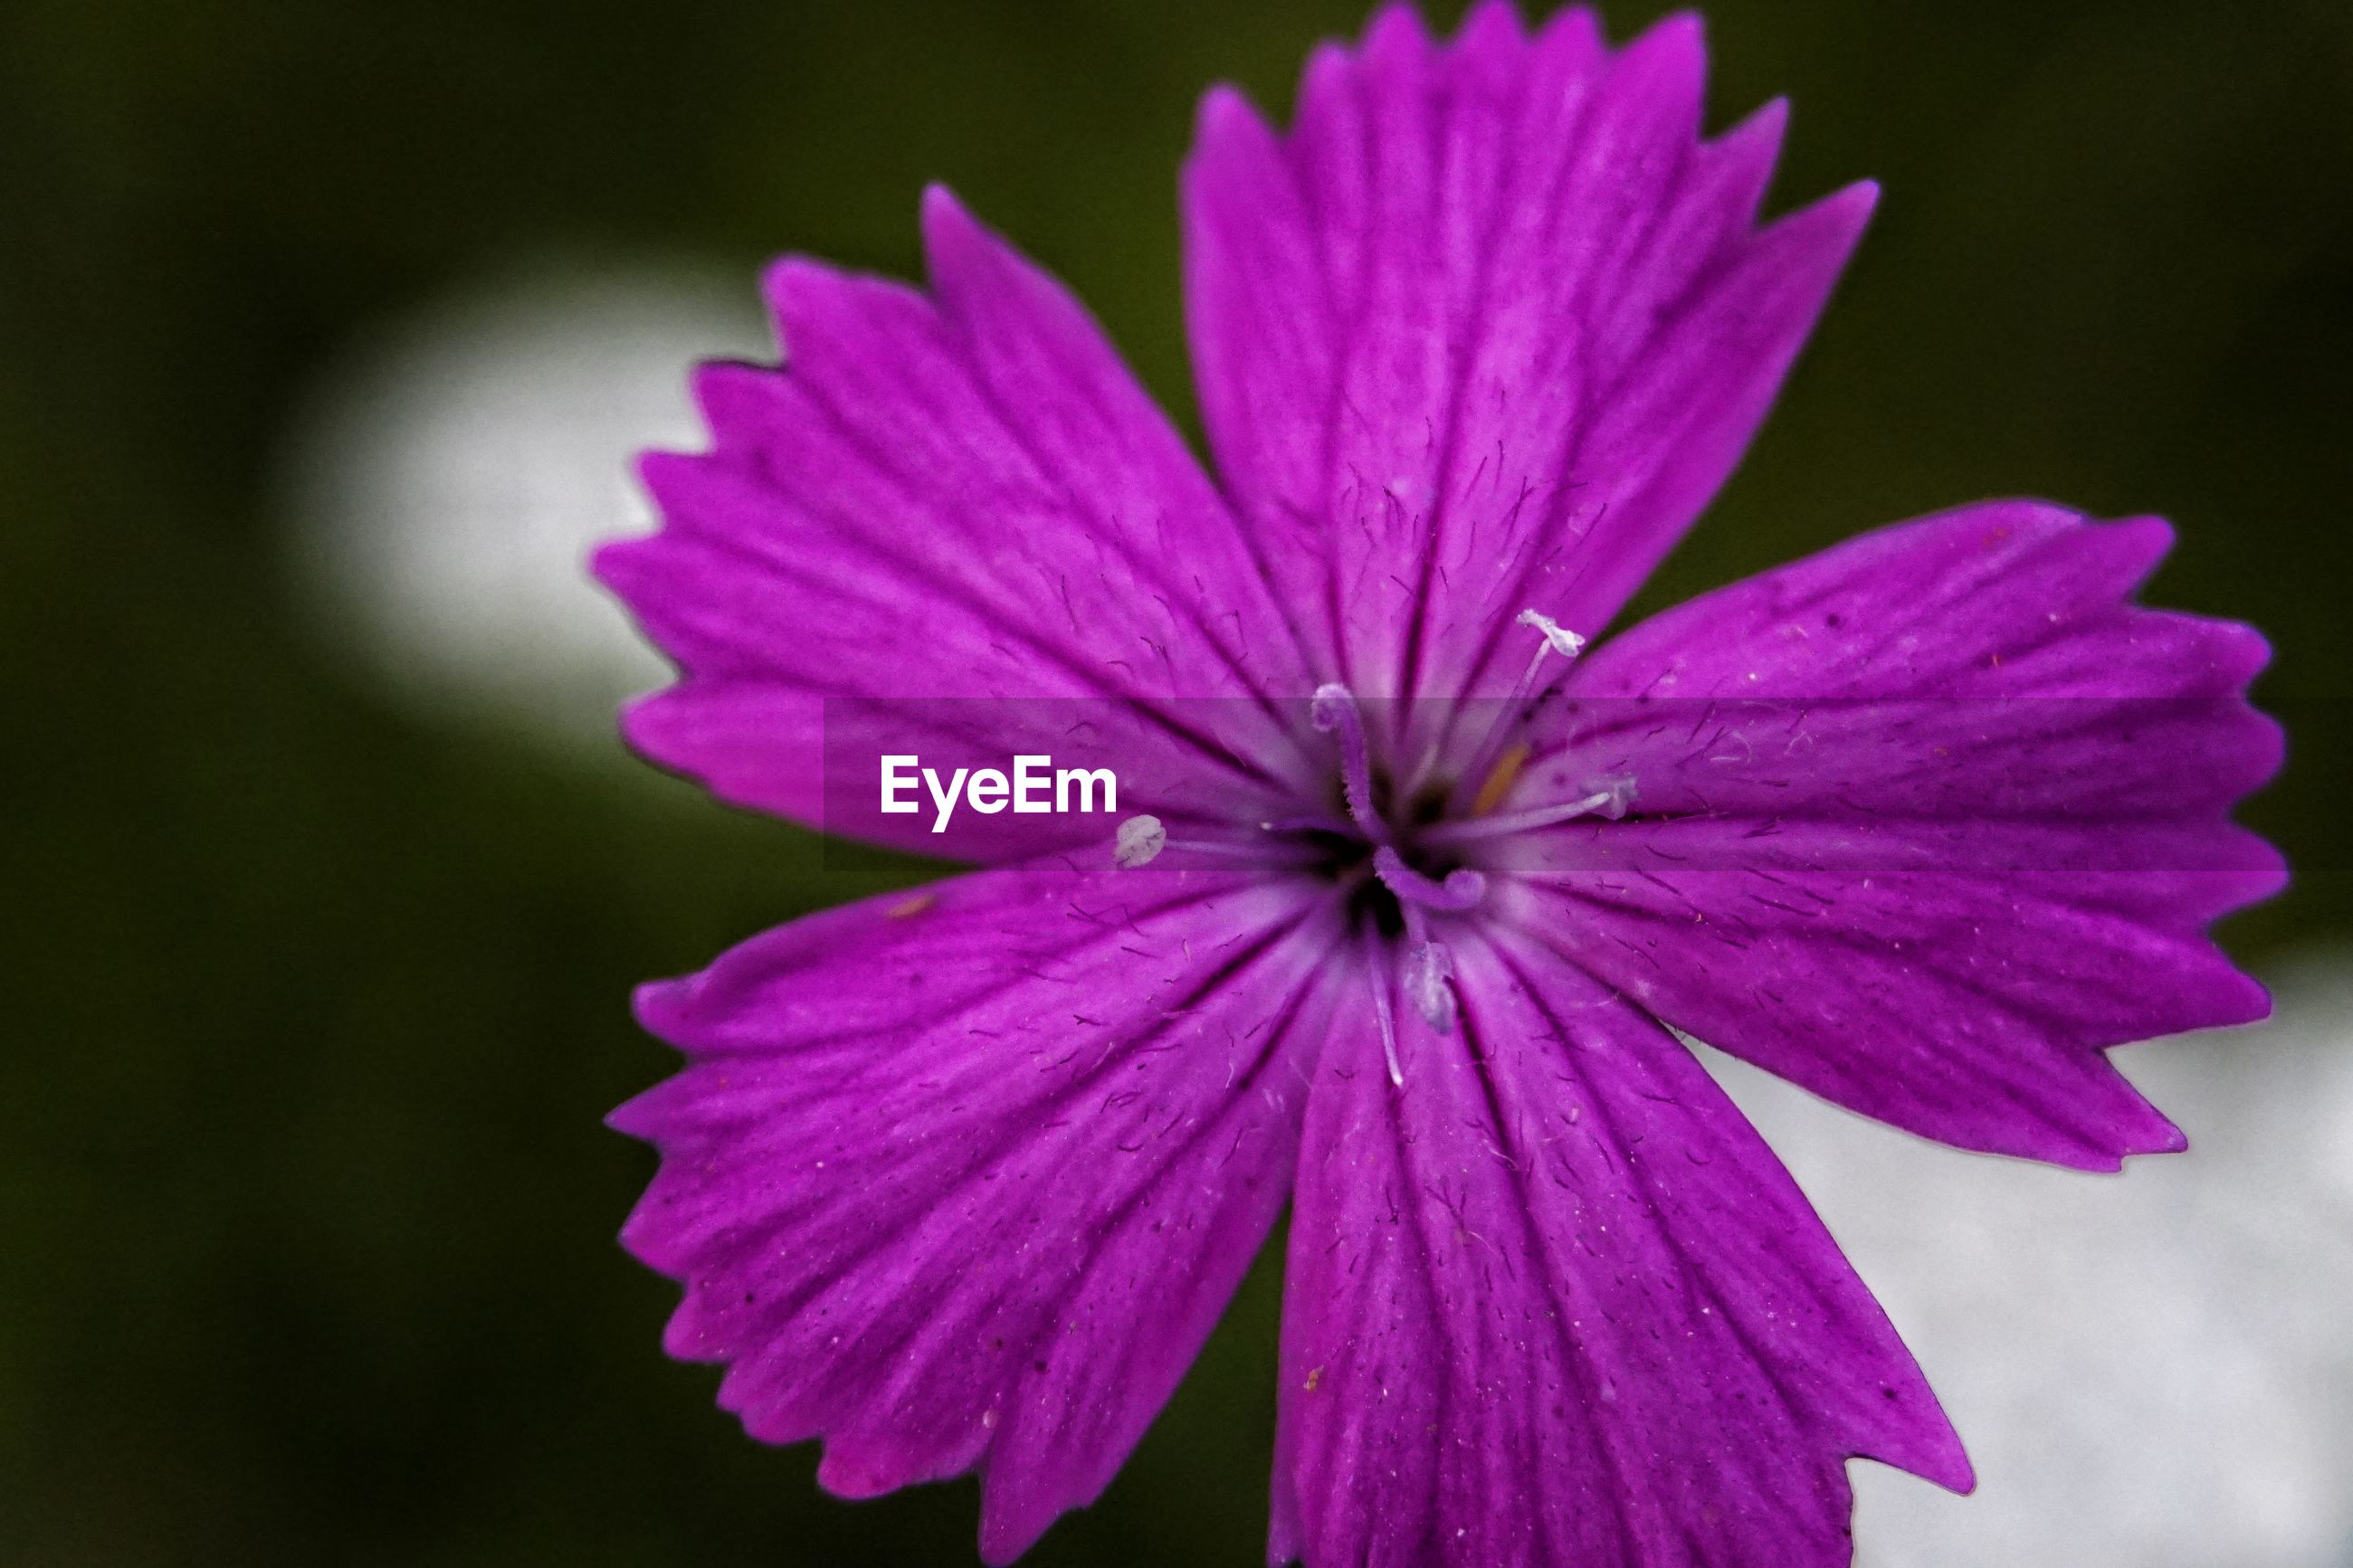 CLOSE-UP OF PINK FLOWER AND PURPLE CONEFLOWER